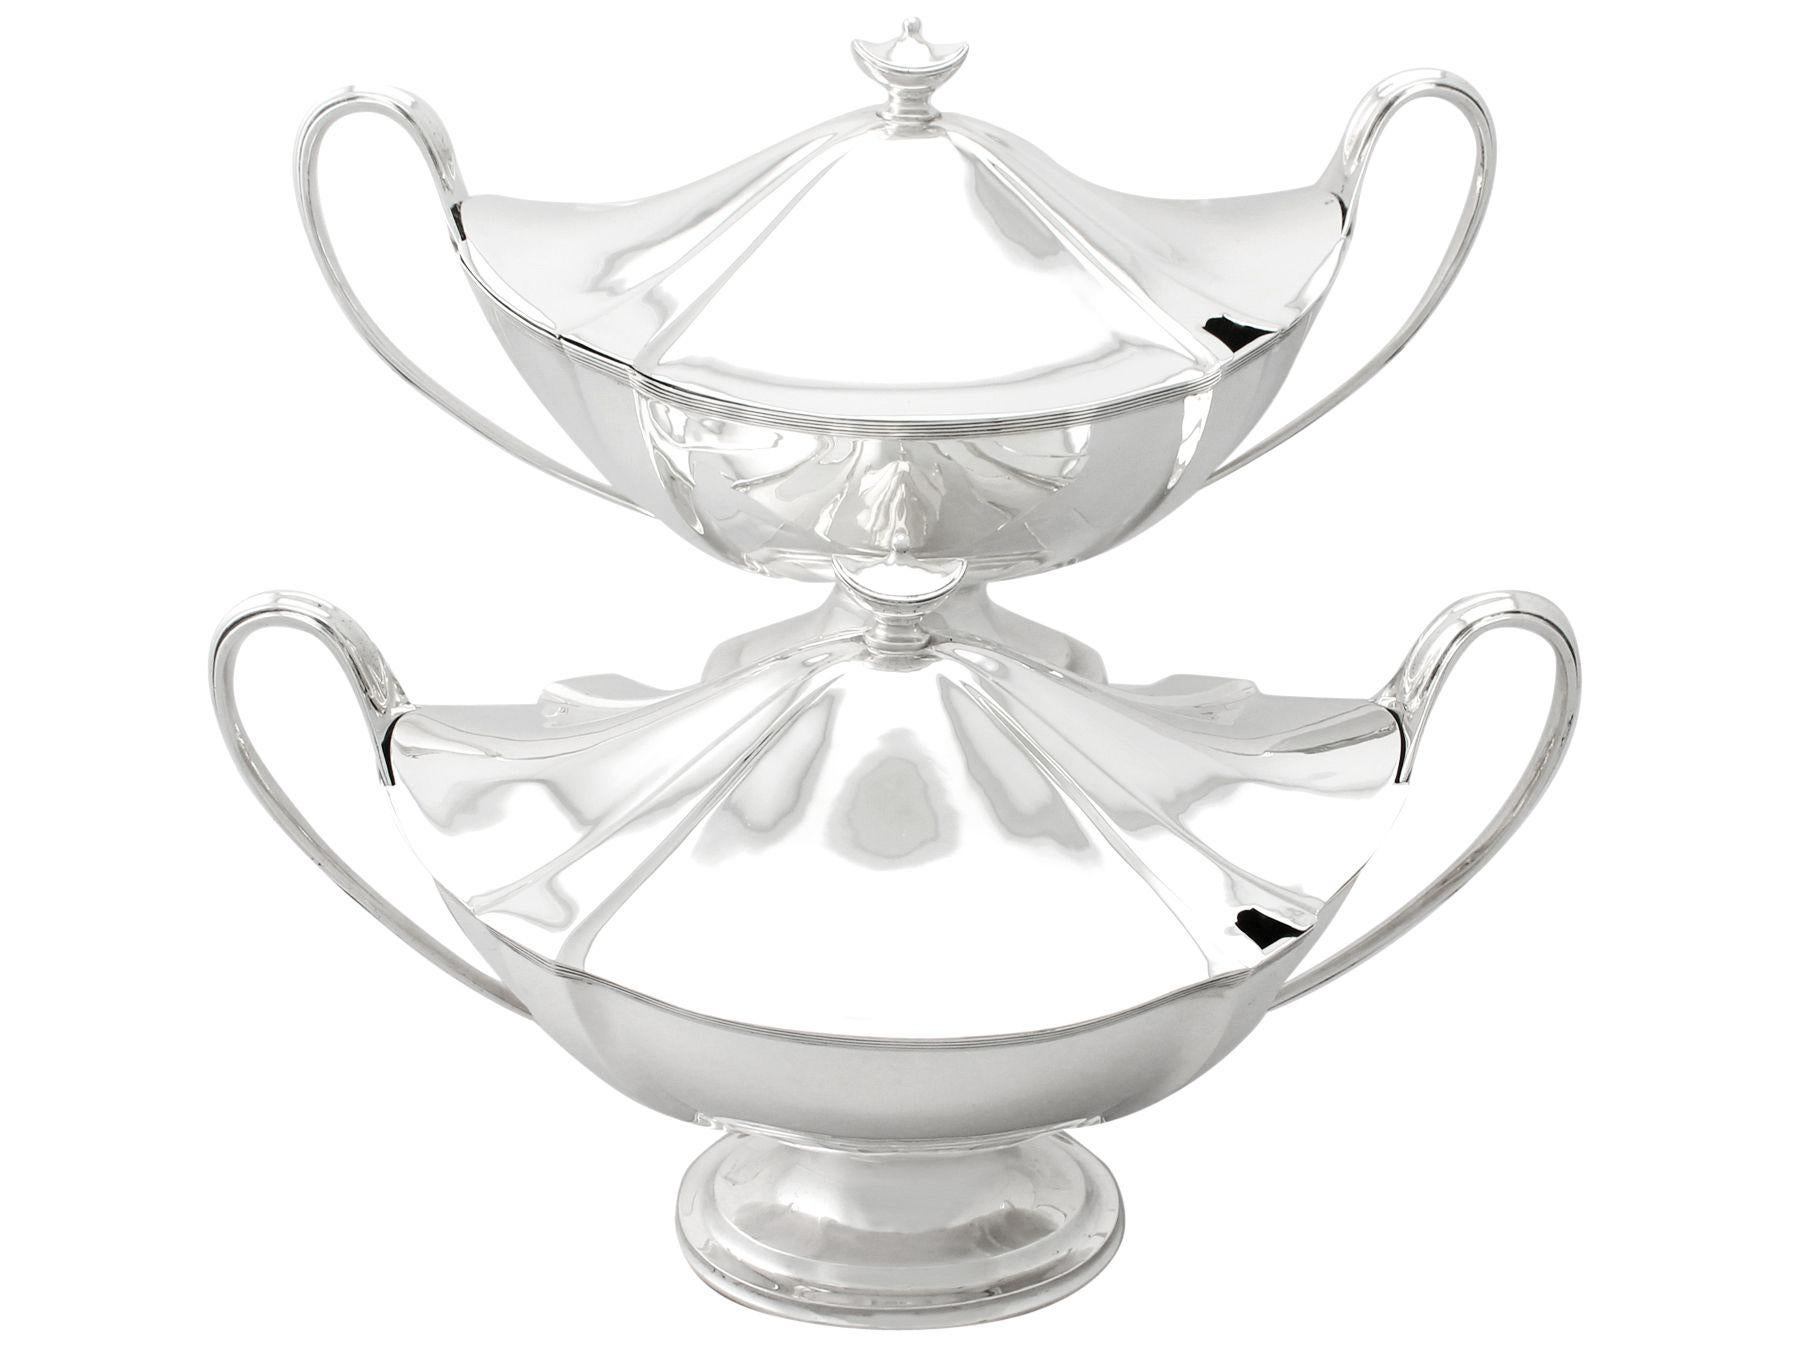 Antique Edwardian Adams Style Sterling Silver Soup Tureens